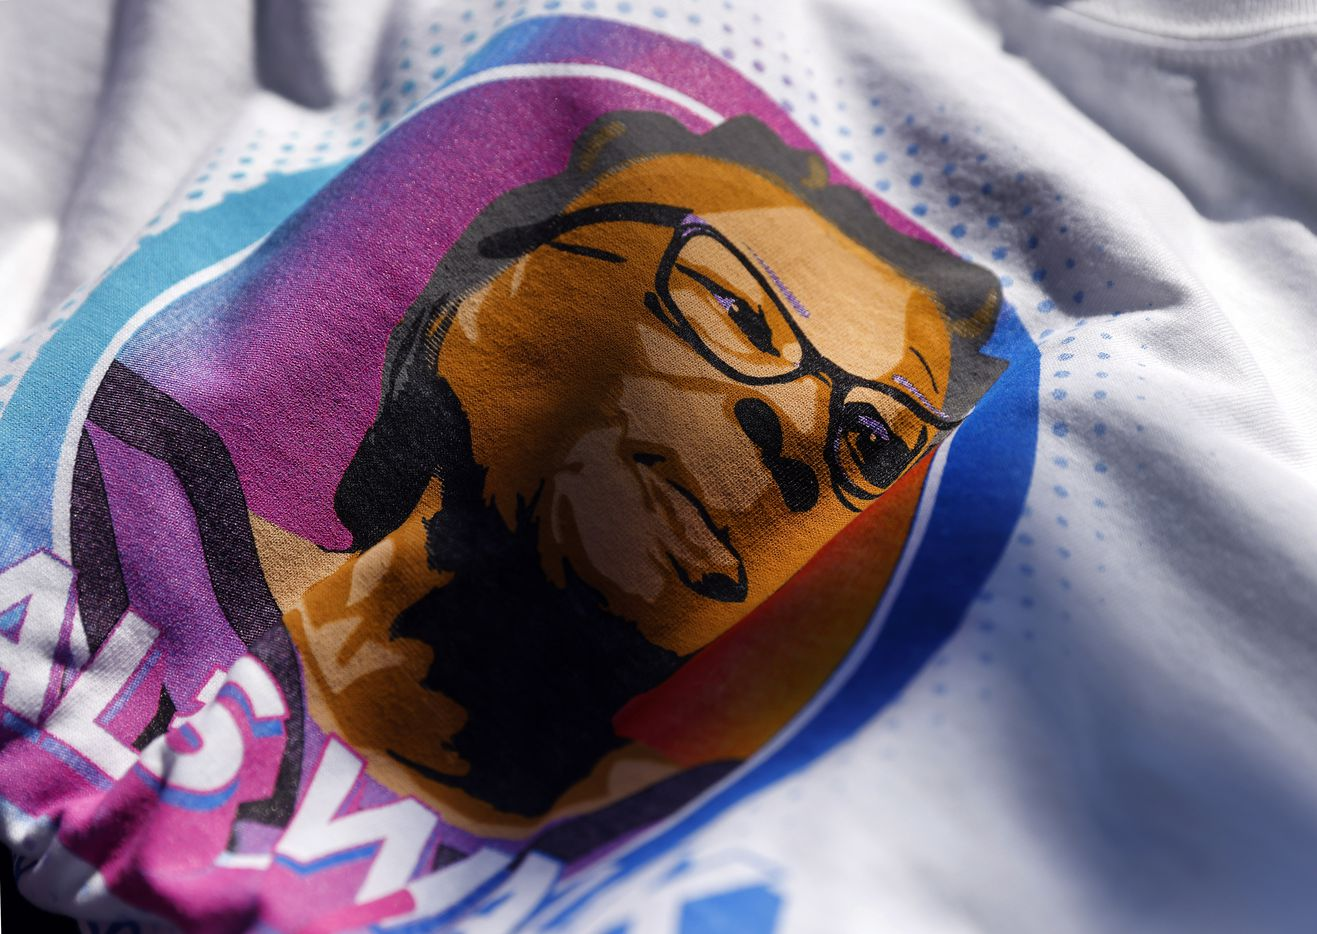 Tee-shirts bearing the likeness of Opal Lee were sold for the walk that started at Evans Avenue Plaza in Fort Worth, Saturday morning, June 19, 2021,